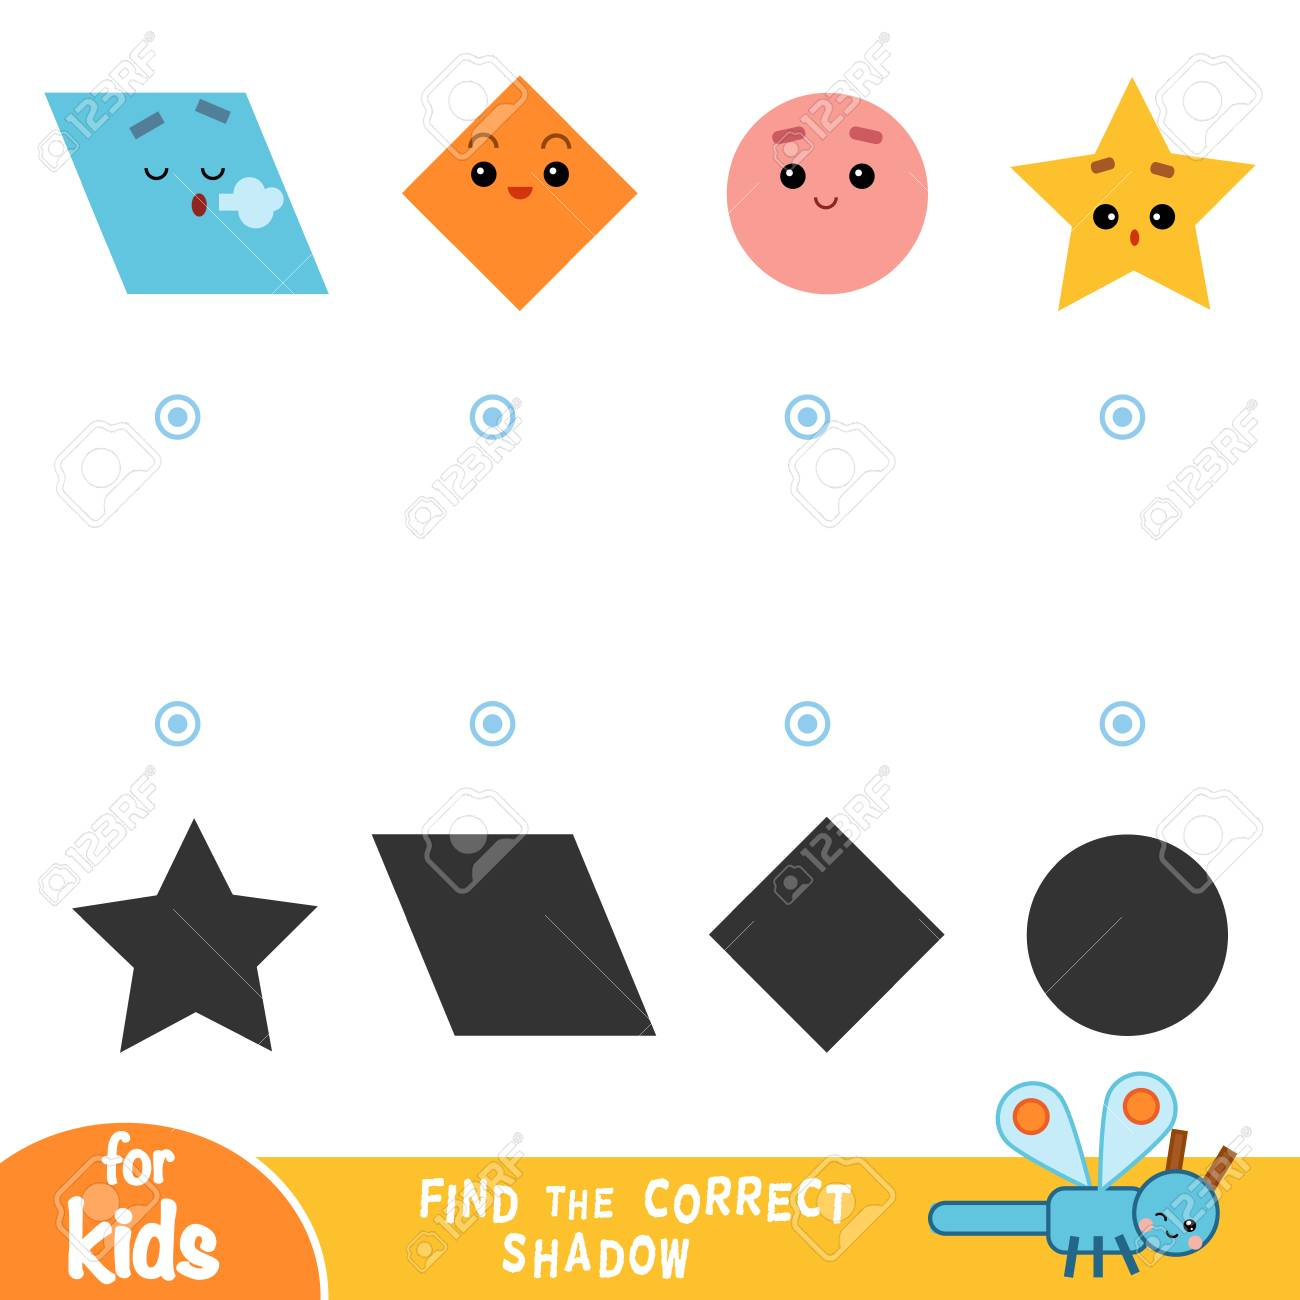 Find the correct shadow, education game for children  Geometric